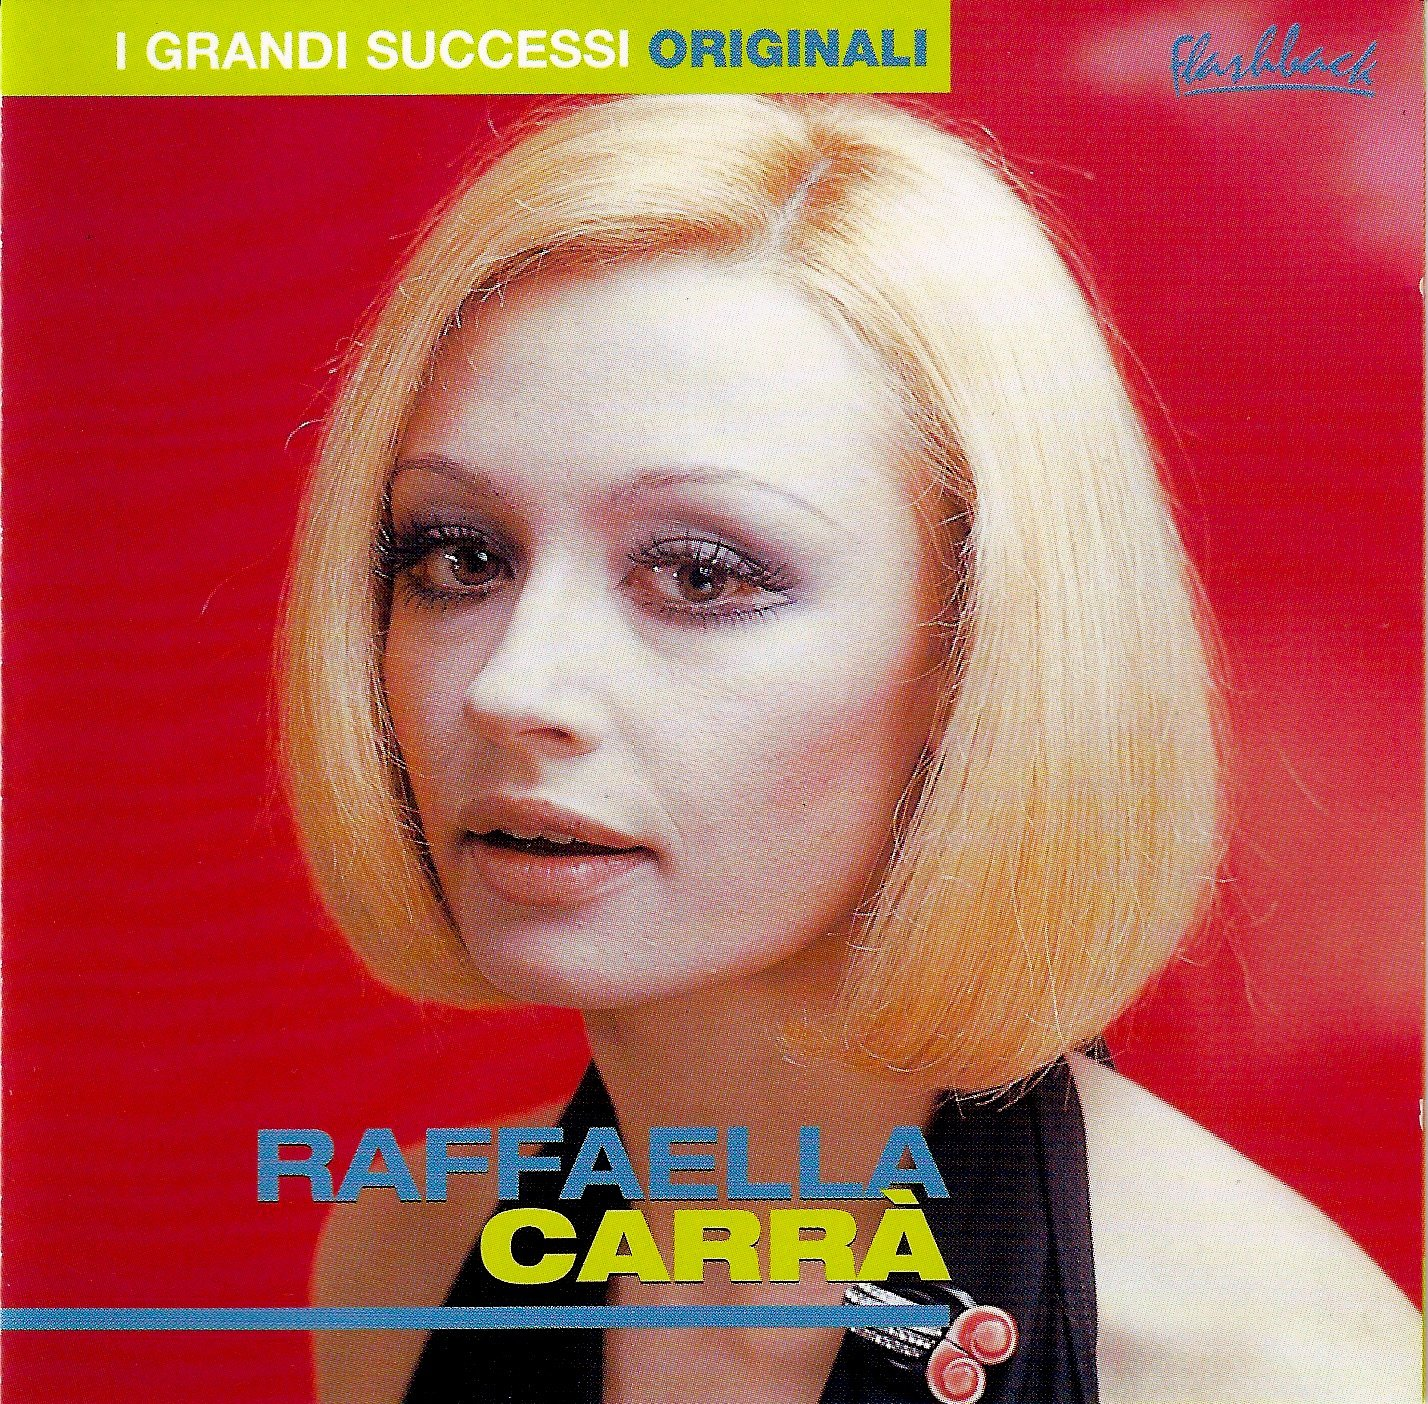 Raffaella Carra (born 1943) Raffaella Carra (born 1943) new images